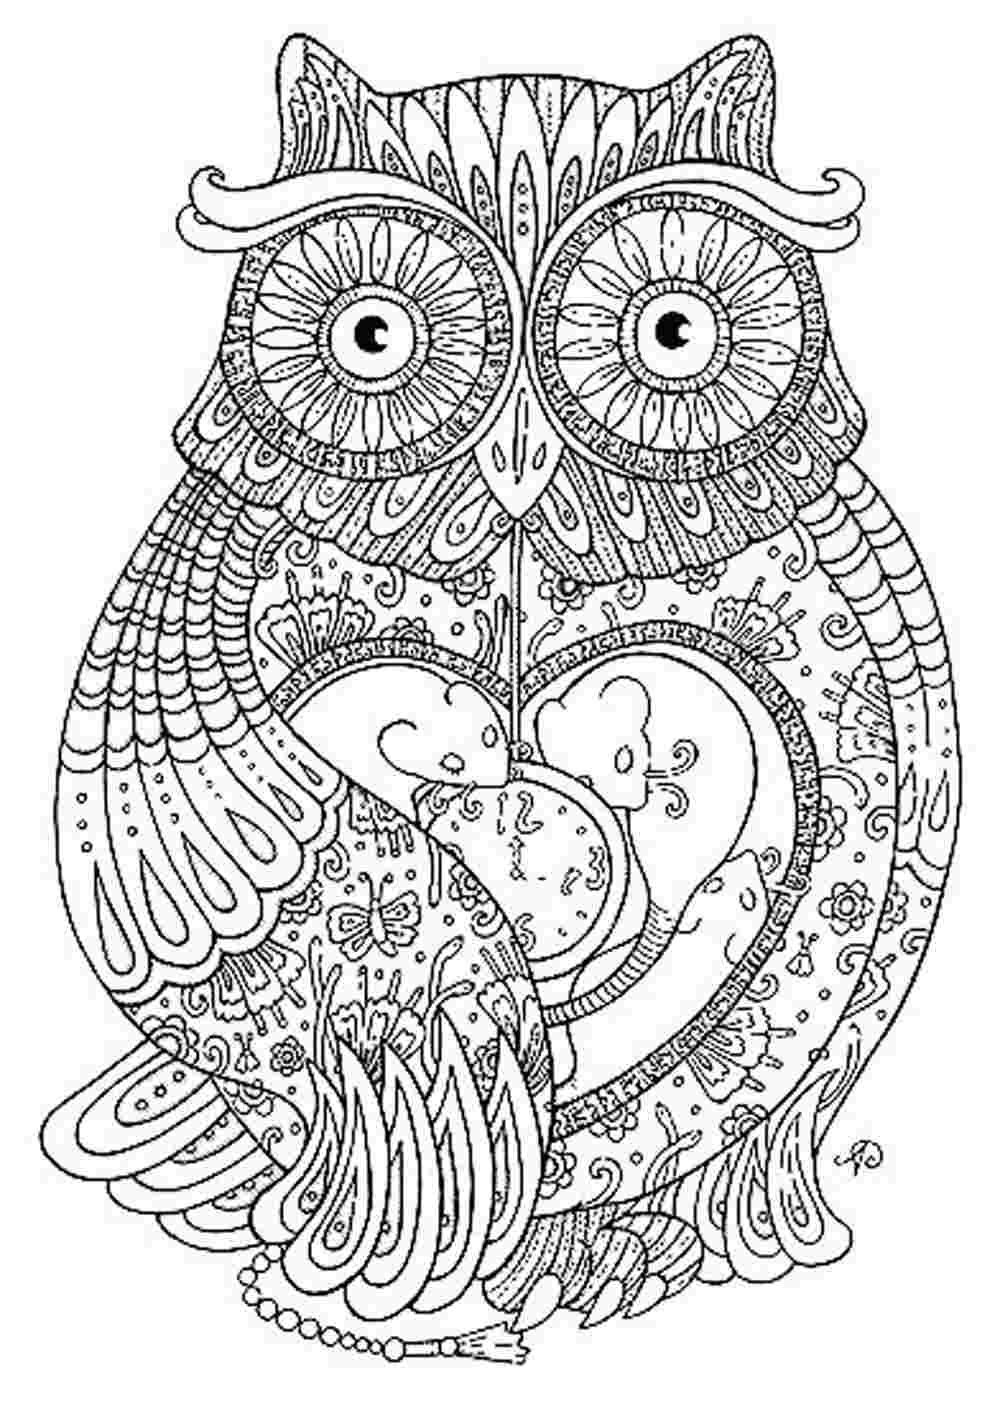 Coloring Pages Coloring Pages For Adult adult coloring page az pages on pinterest coloring